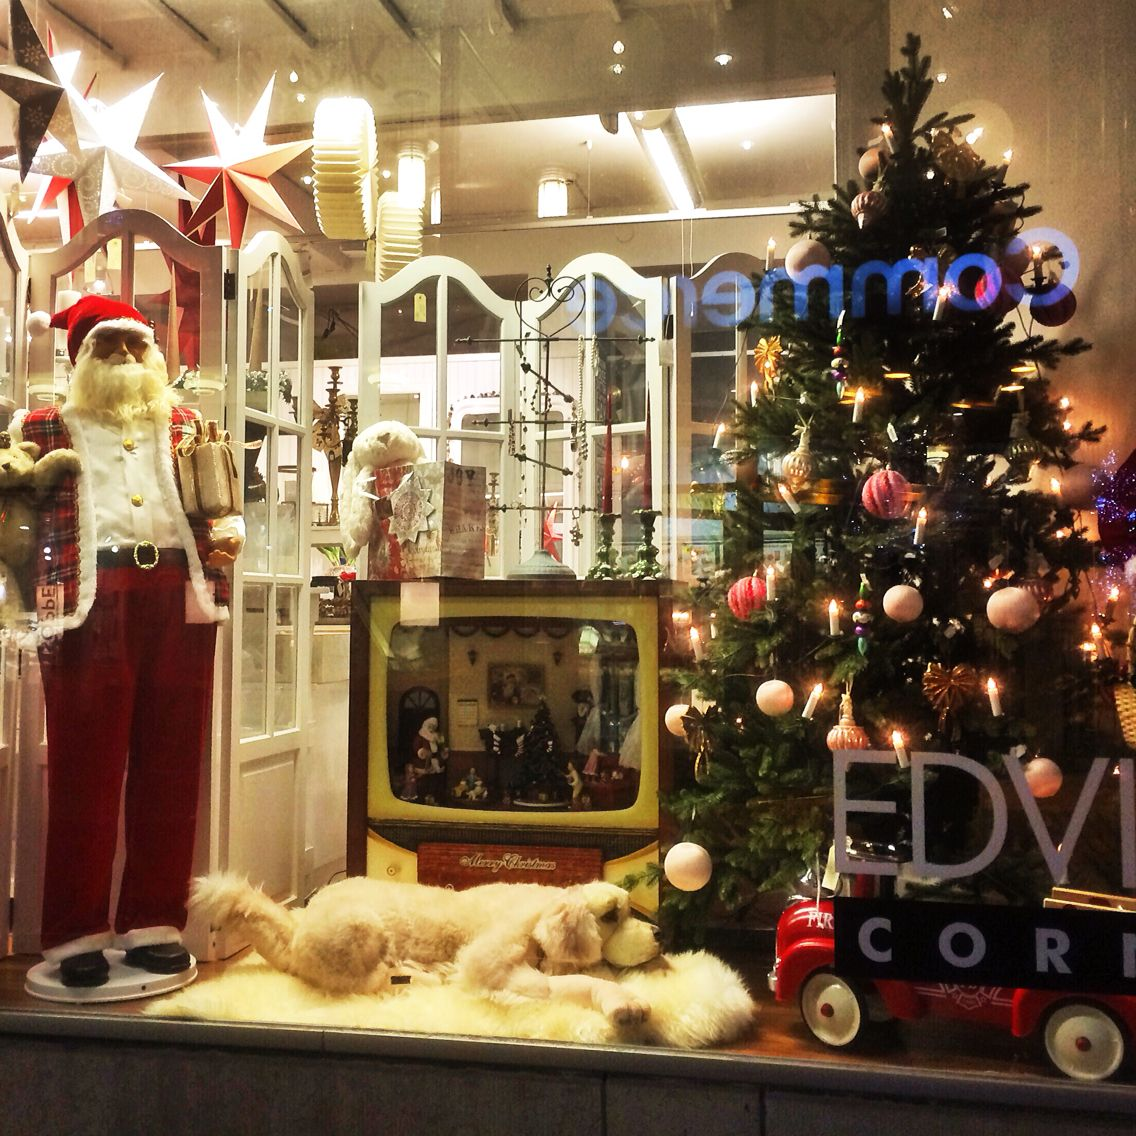 The display window of my favourite shop in Skövde, Sweden ❤️